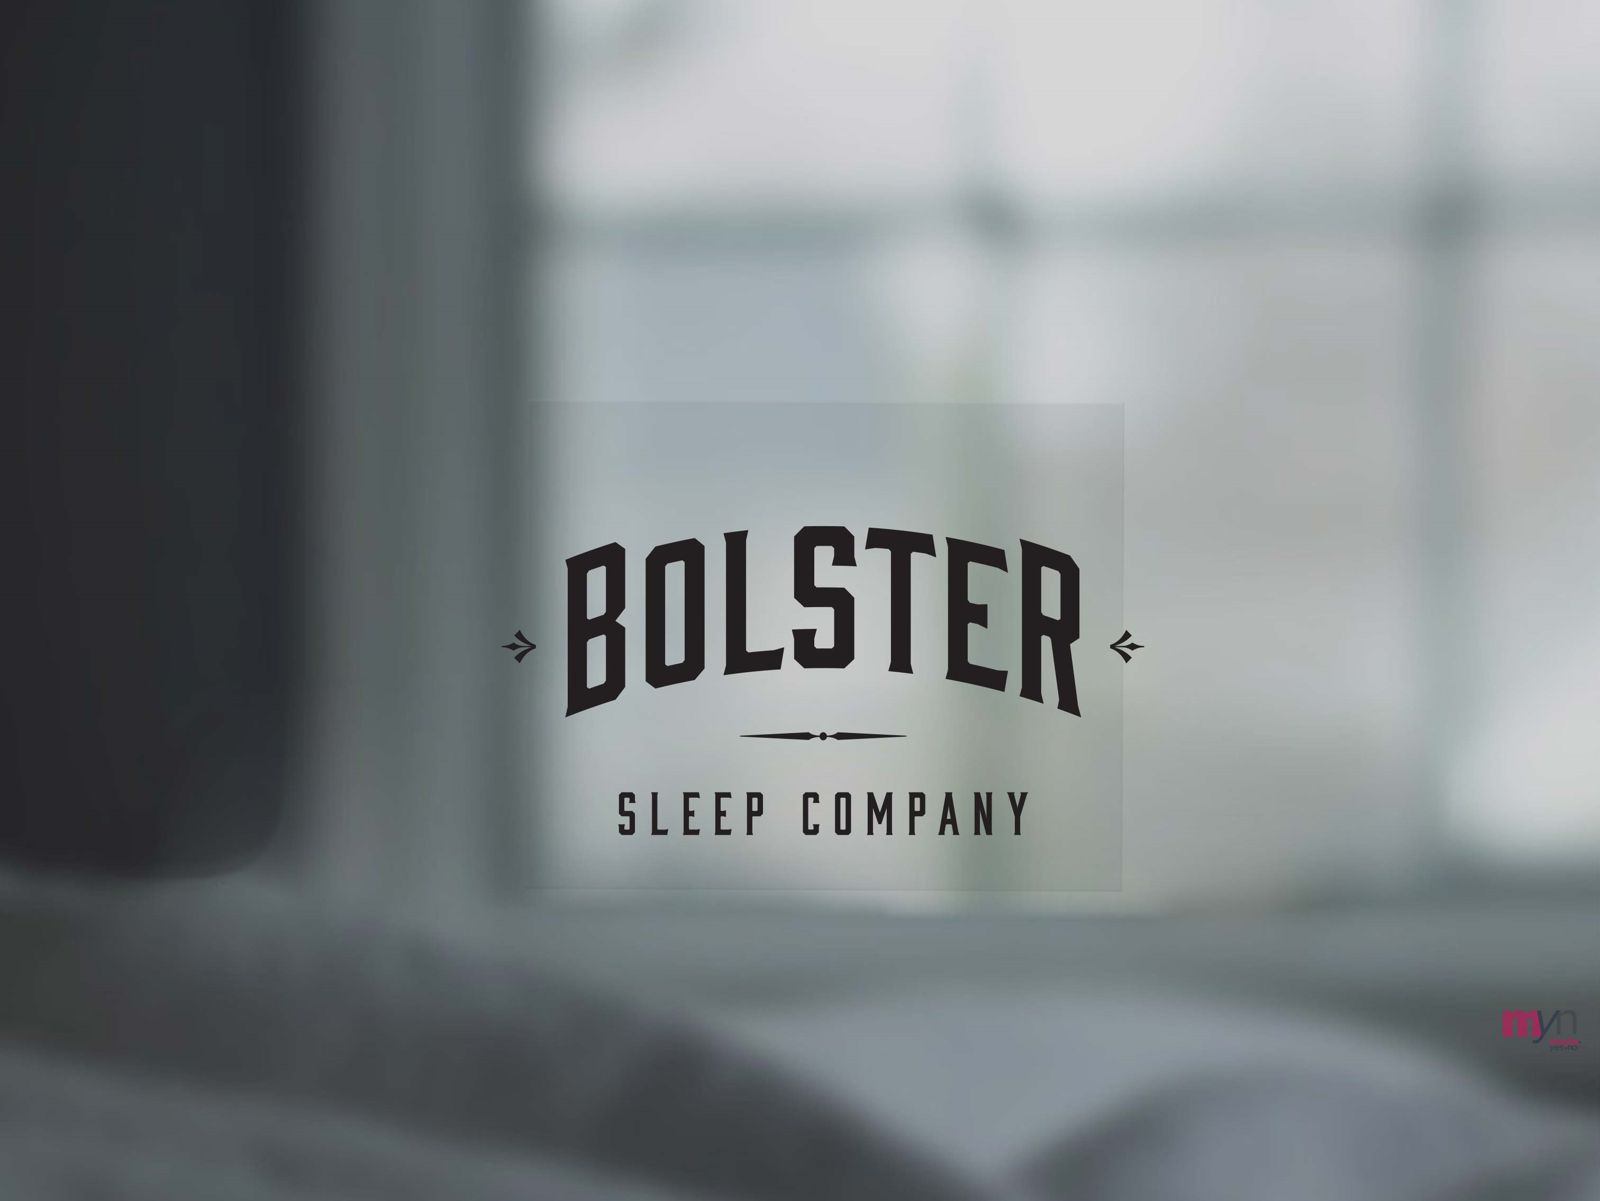 Bolster Sleep  SHIPS FREE IN A BOX & SUPPORTS ALL SLEEP SURFACES. Use Promo code: SPRING at checkout to get an extra $125 savings  Click here